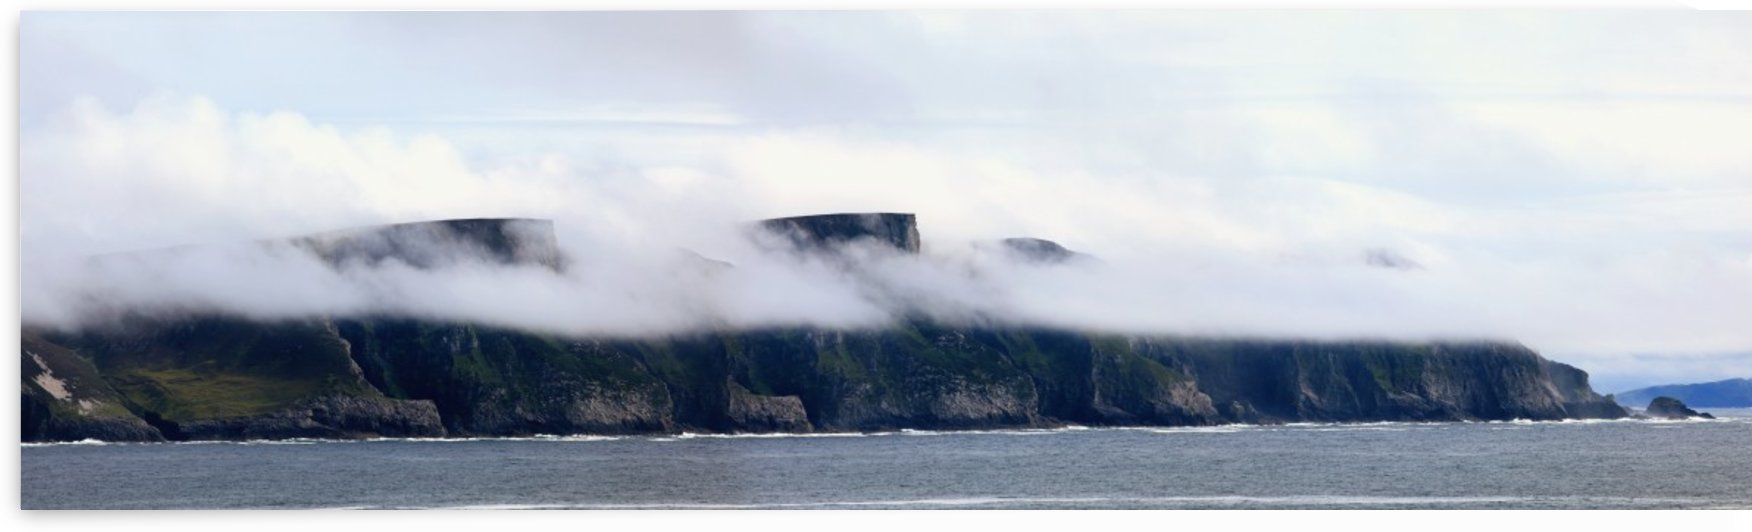 The seacliff at minaun heights on achill island;County mayo, ireland by PacificStock